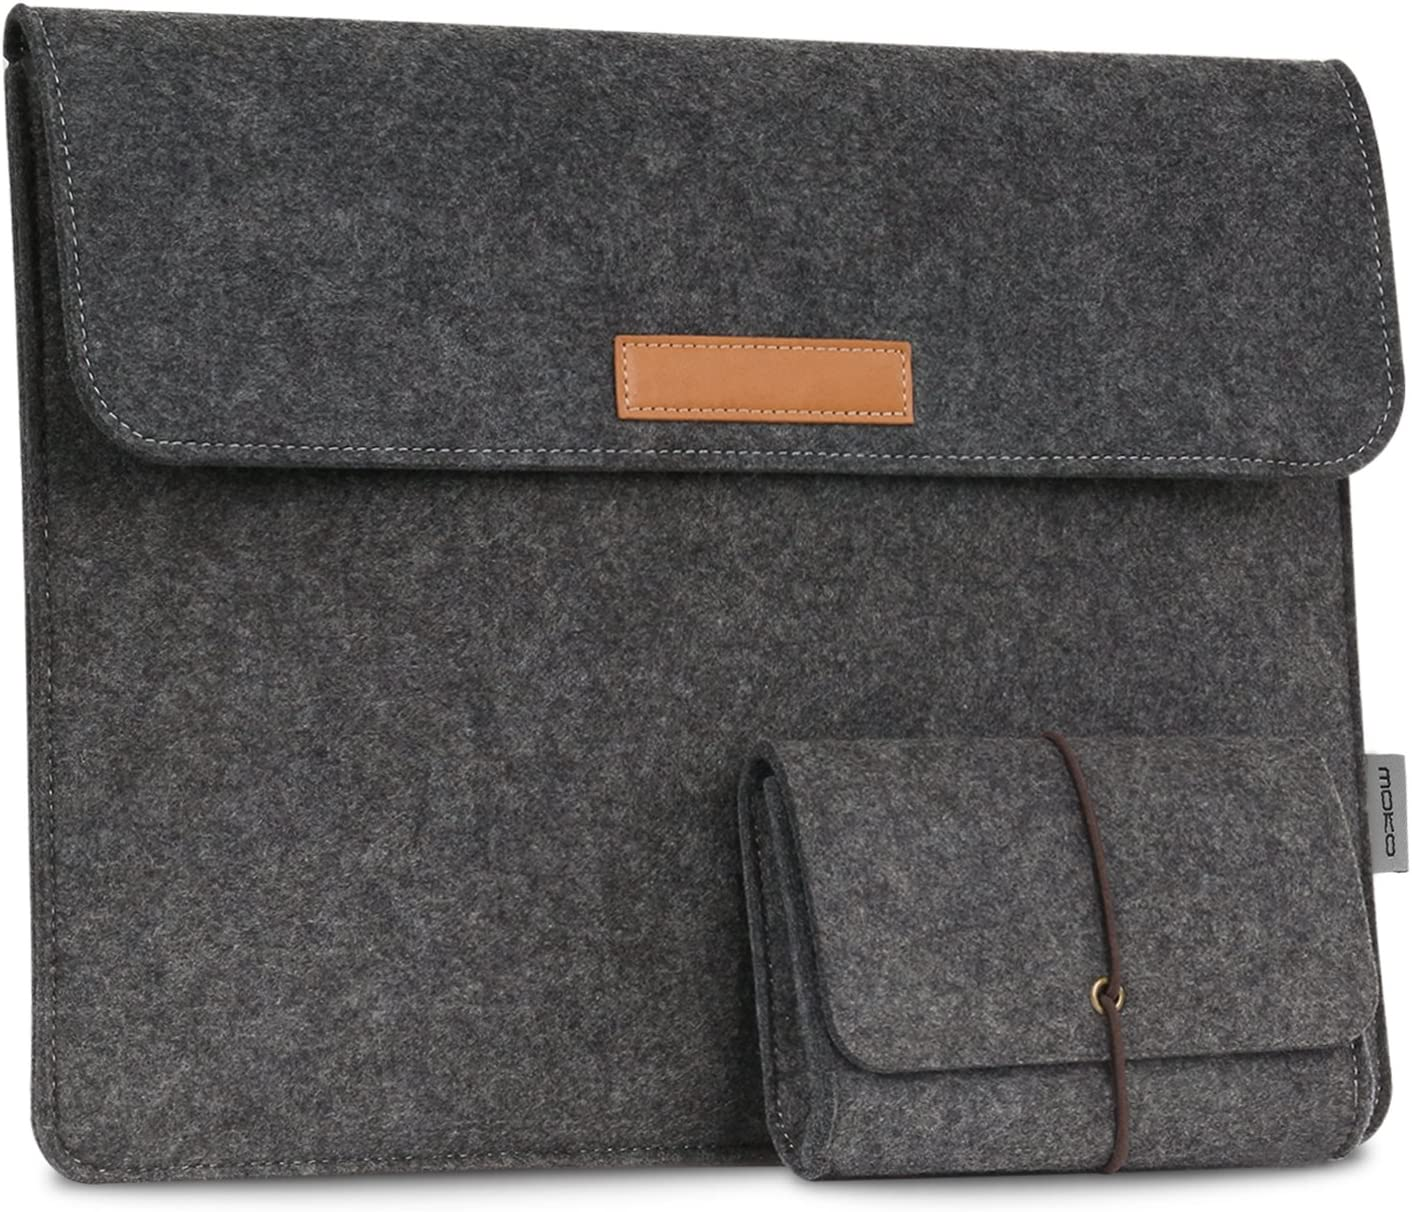 "MoKo 13-13.3 Inch Laptop Sleeve Case Fits MacBook Air 13-inch Retina, MacBook Pro 13"", Dell XPS 13, Samsung Notebook 9 13.3"" HP Asus Acer Notebook Computer with Small Felt Accessory Bag - Dark Gray"